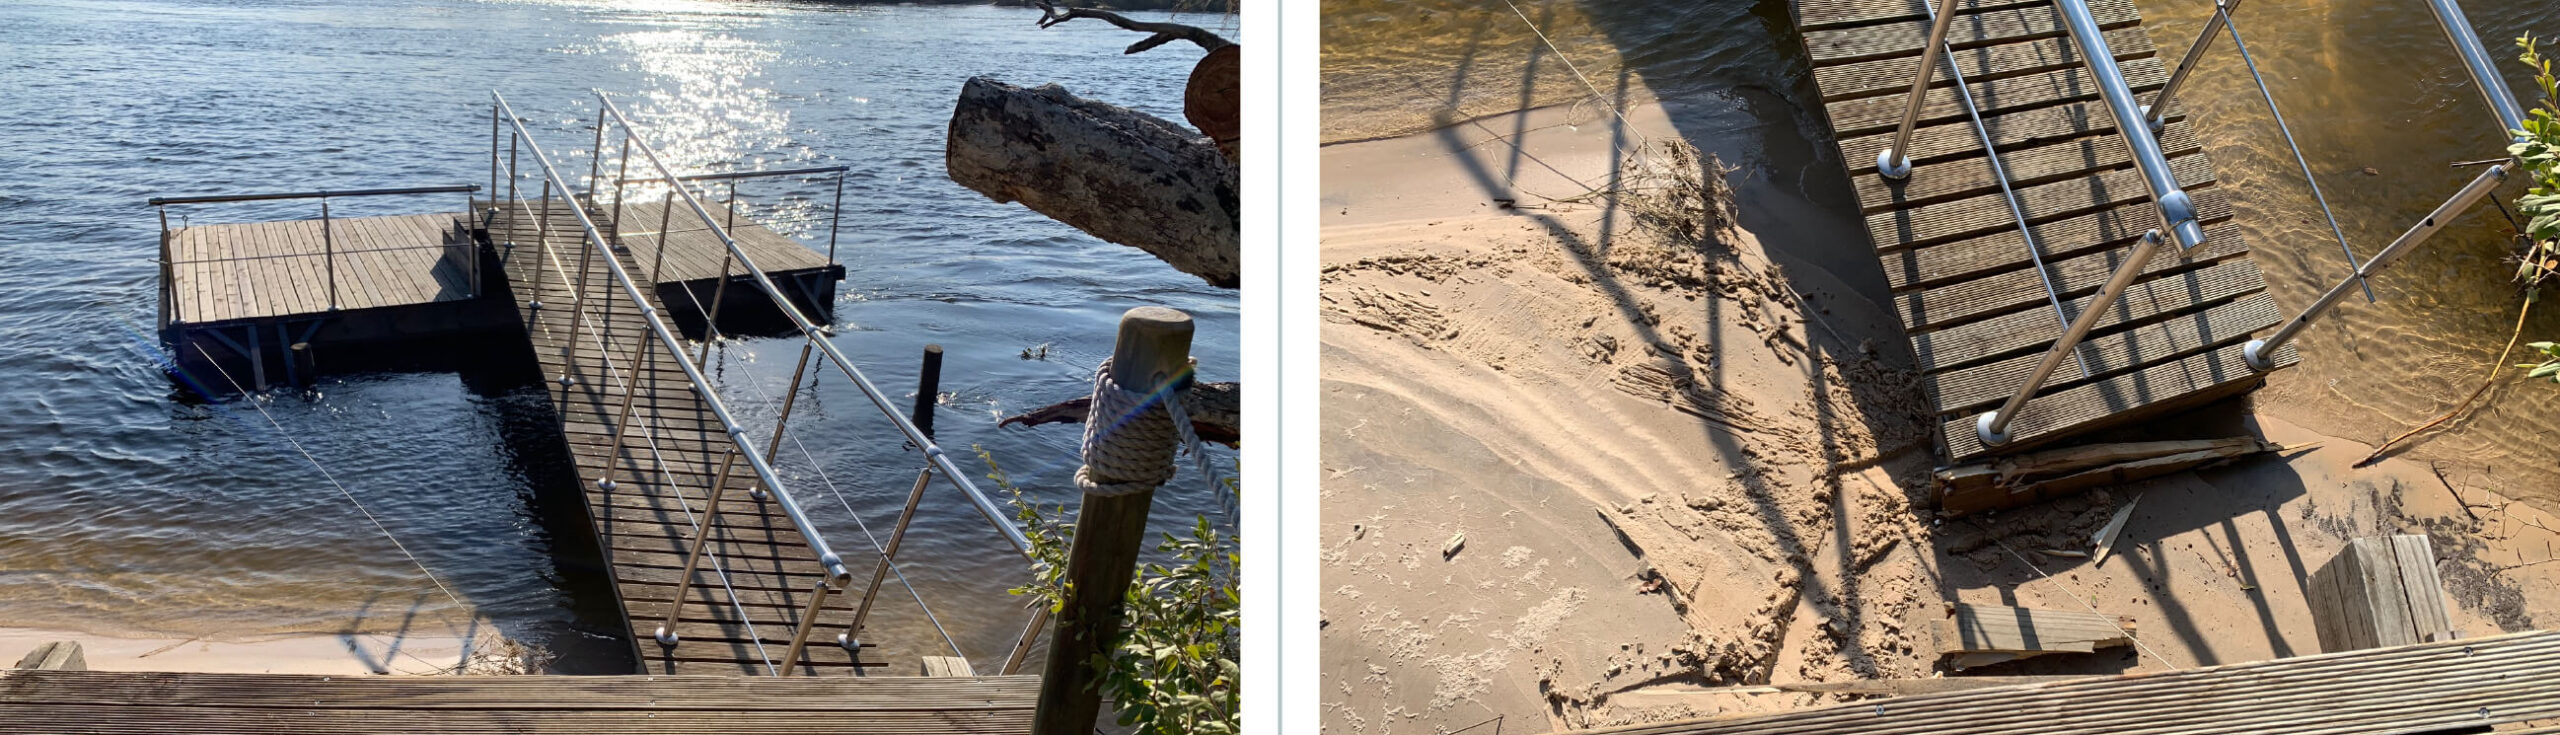 Pictures of damaged Jetty from an Elephant Bull